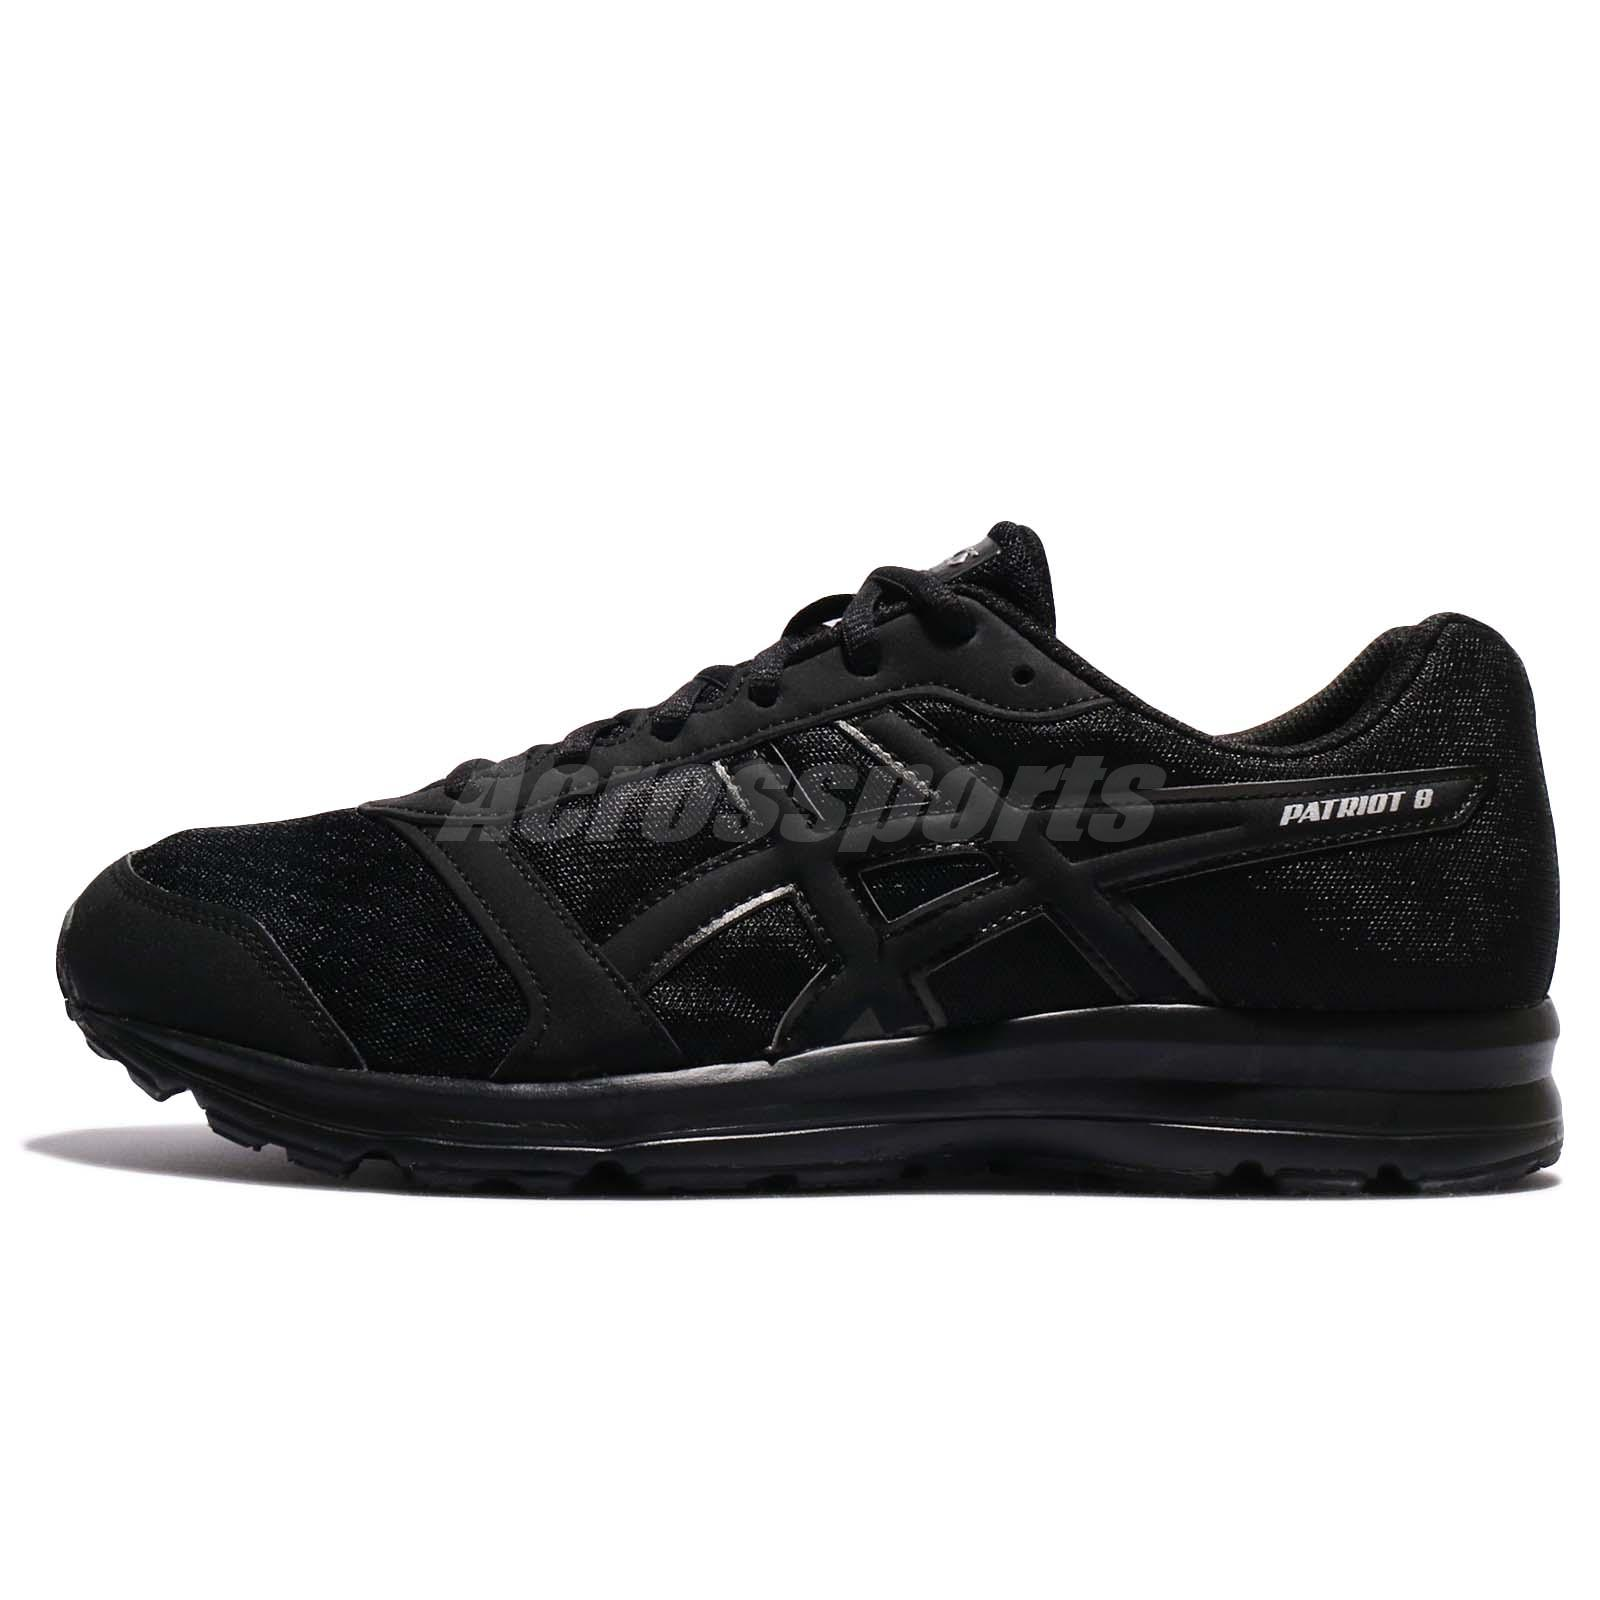 Asics Patriot 8 VIII Black Out Men Running Shoes Sneakers Trainers T619Q 9090